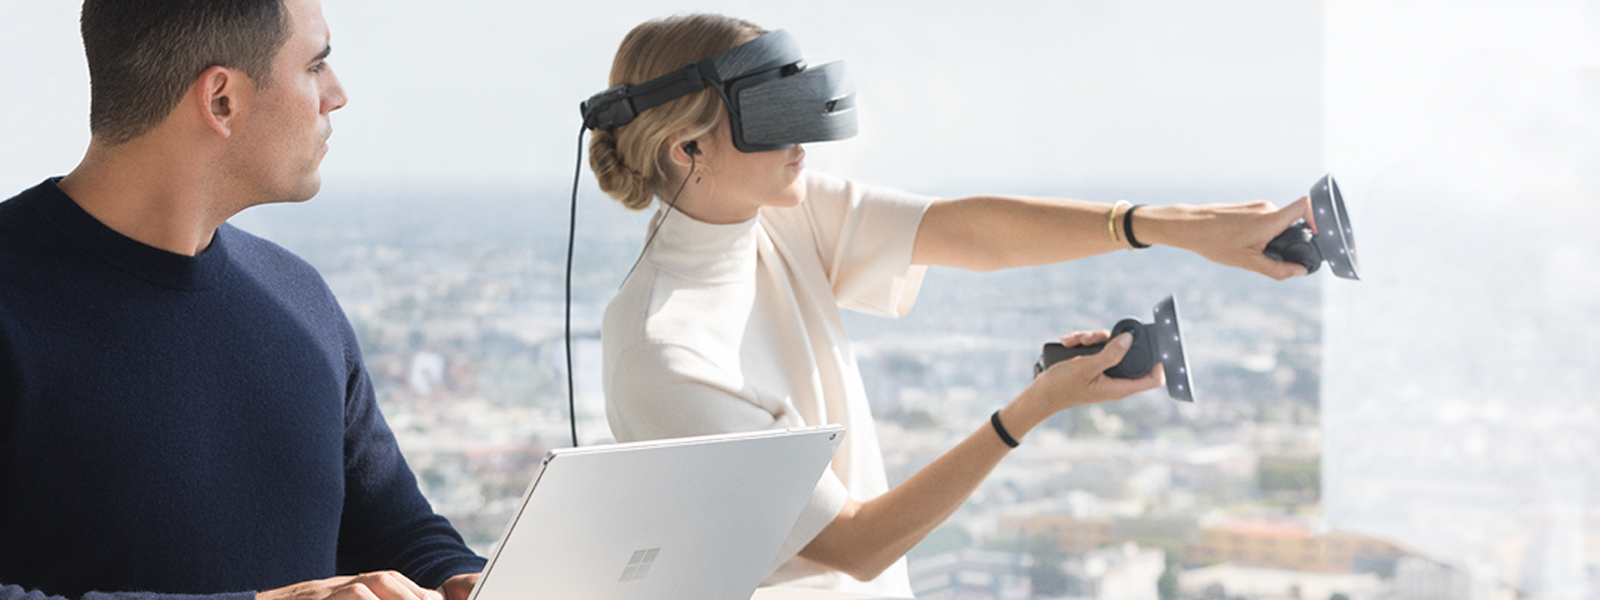 Frau verwendet Windows Mixed Reality-Headset und -Motion-Controller